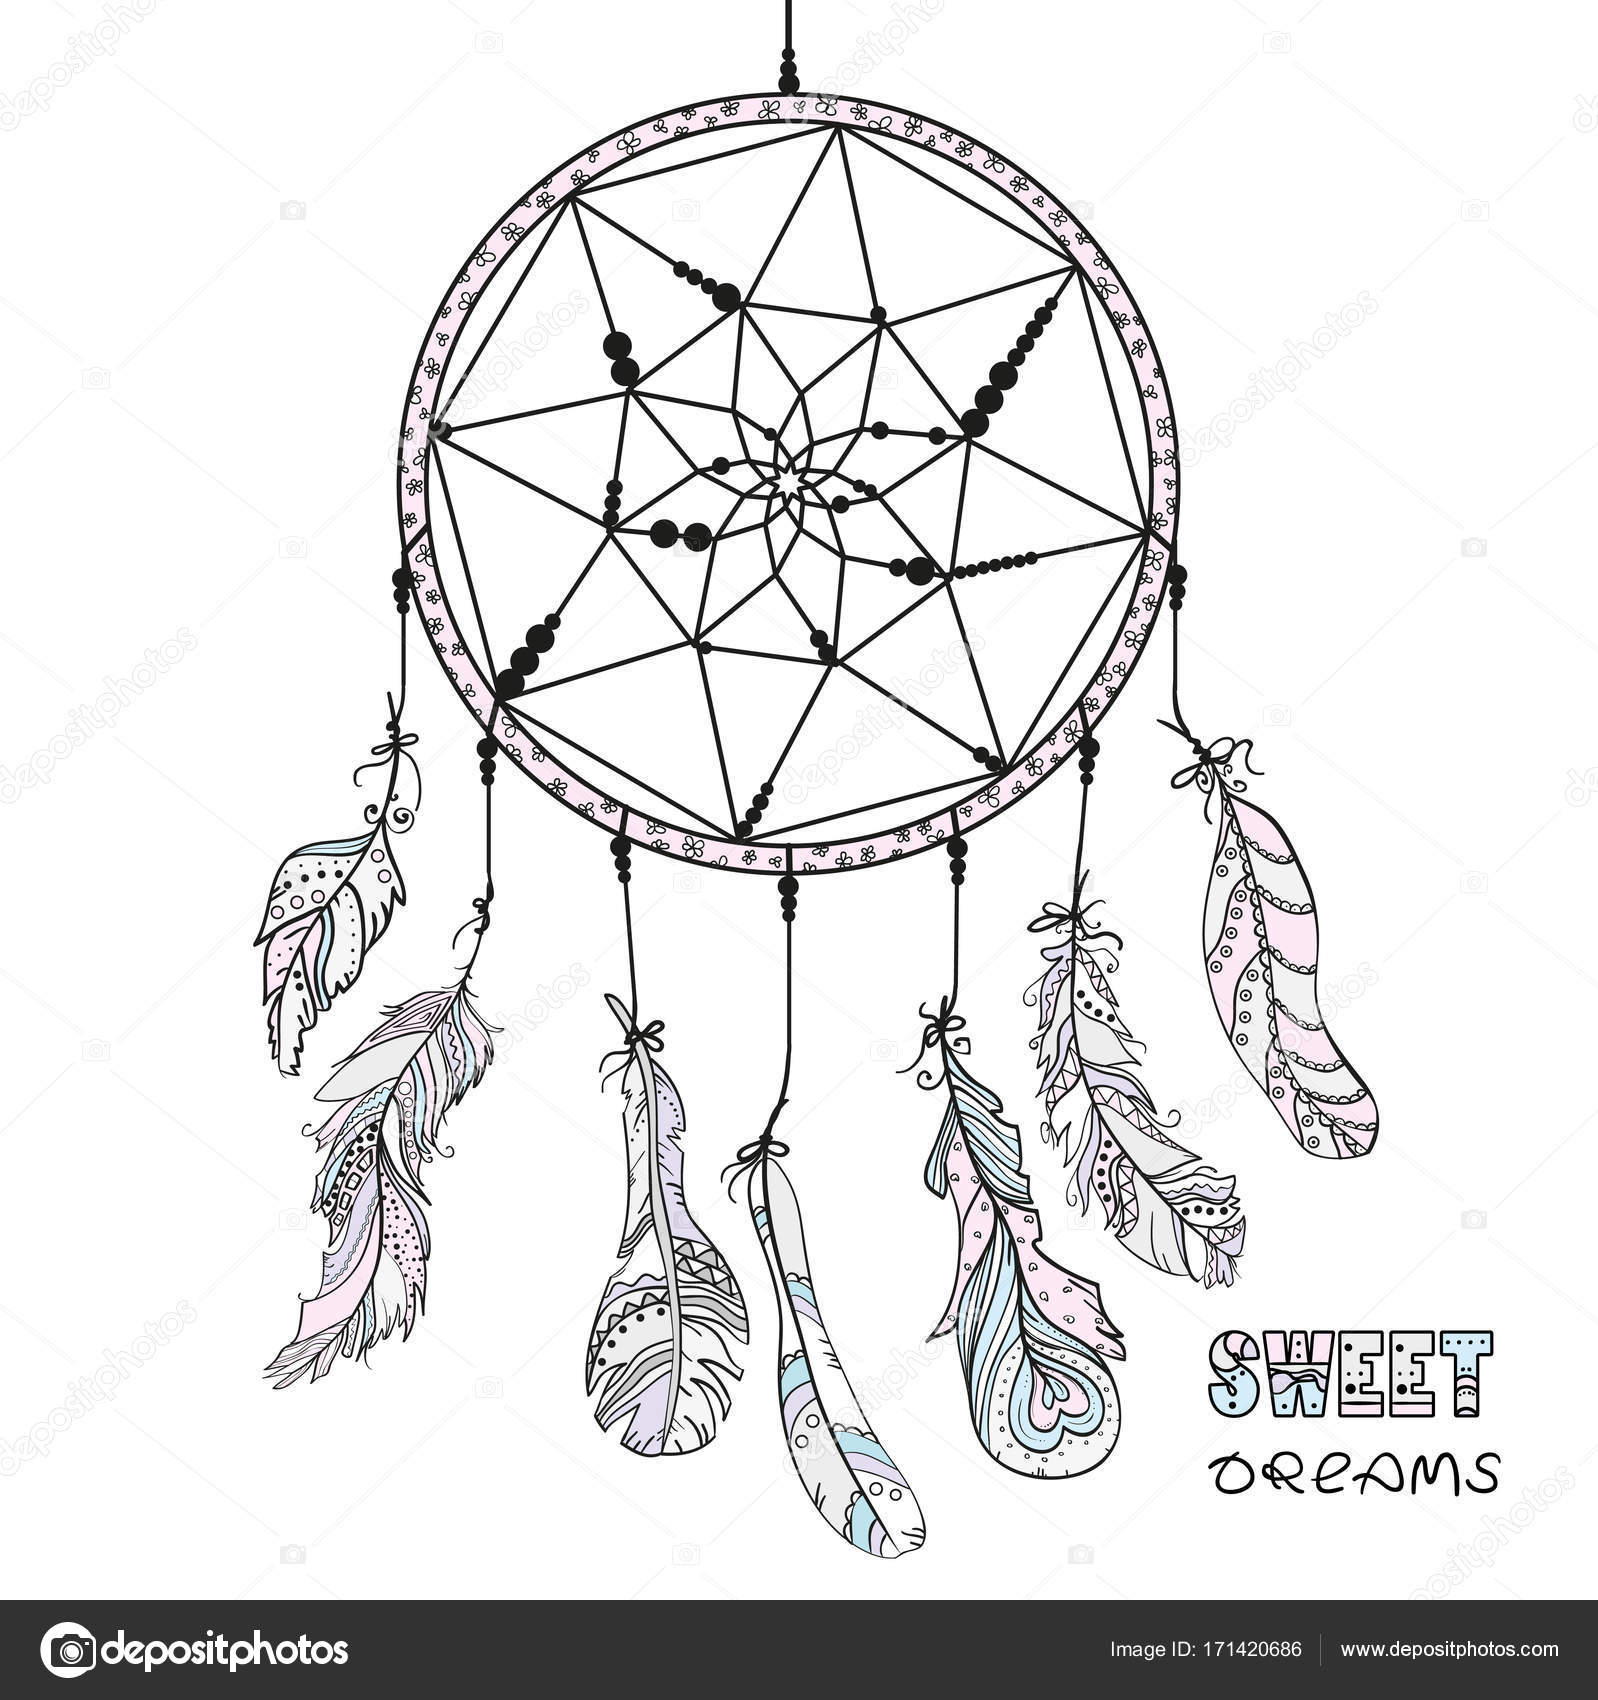 Dreamcatcher Tattoo Art Stockfoto C Mikabesfamilnaya 171420686